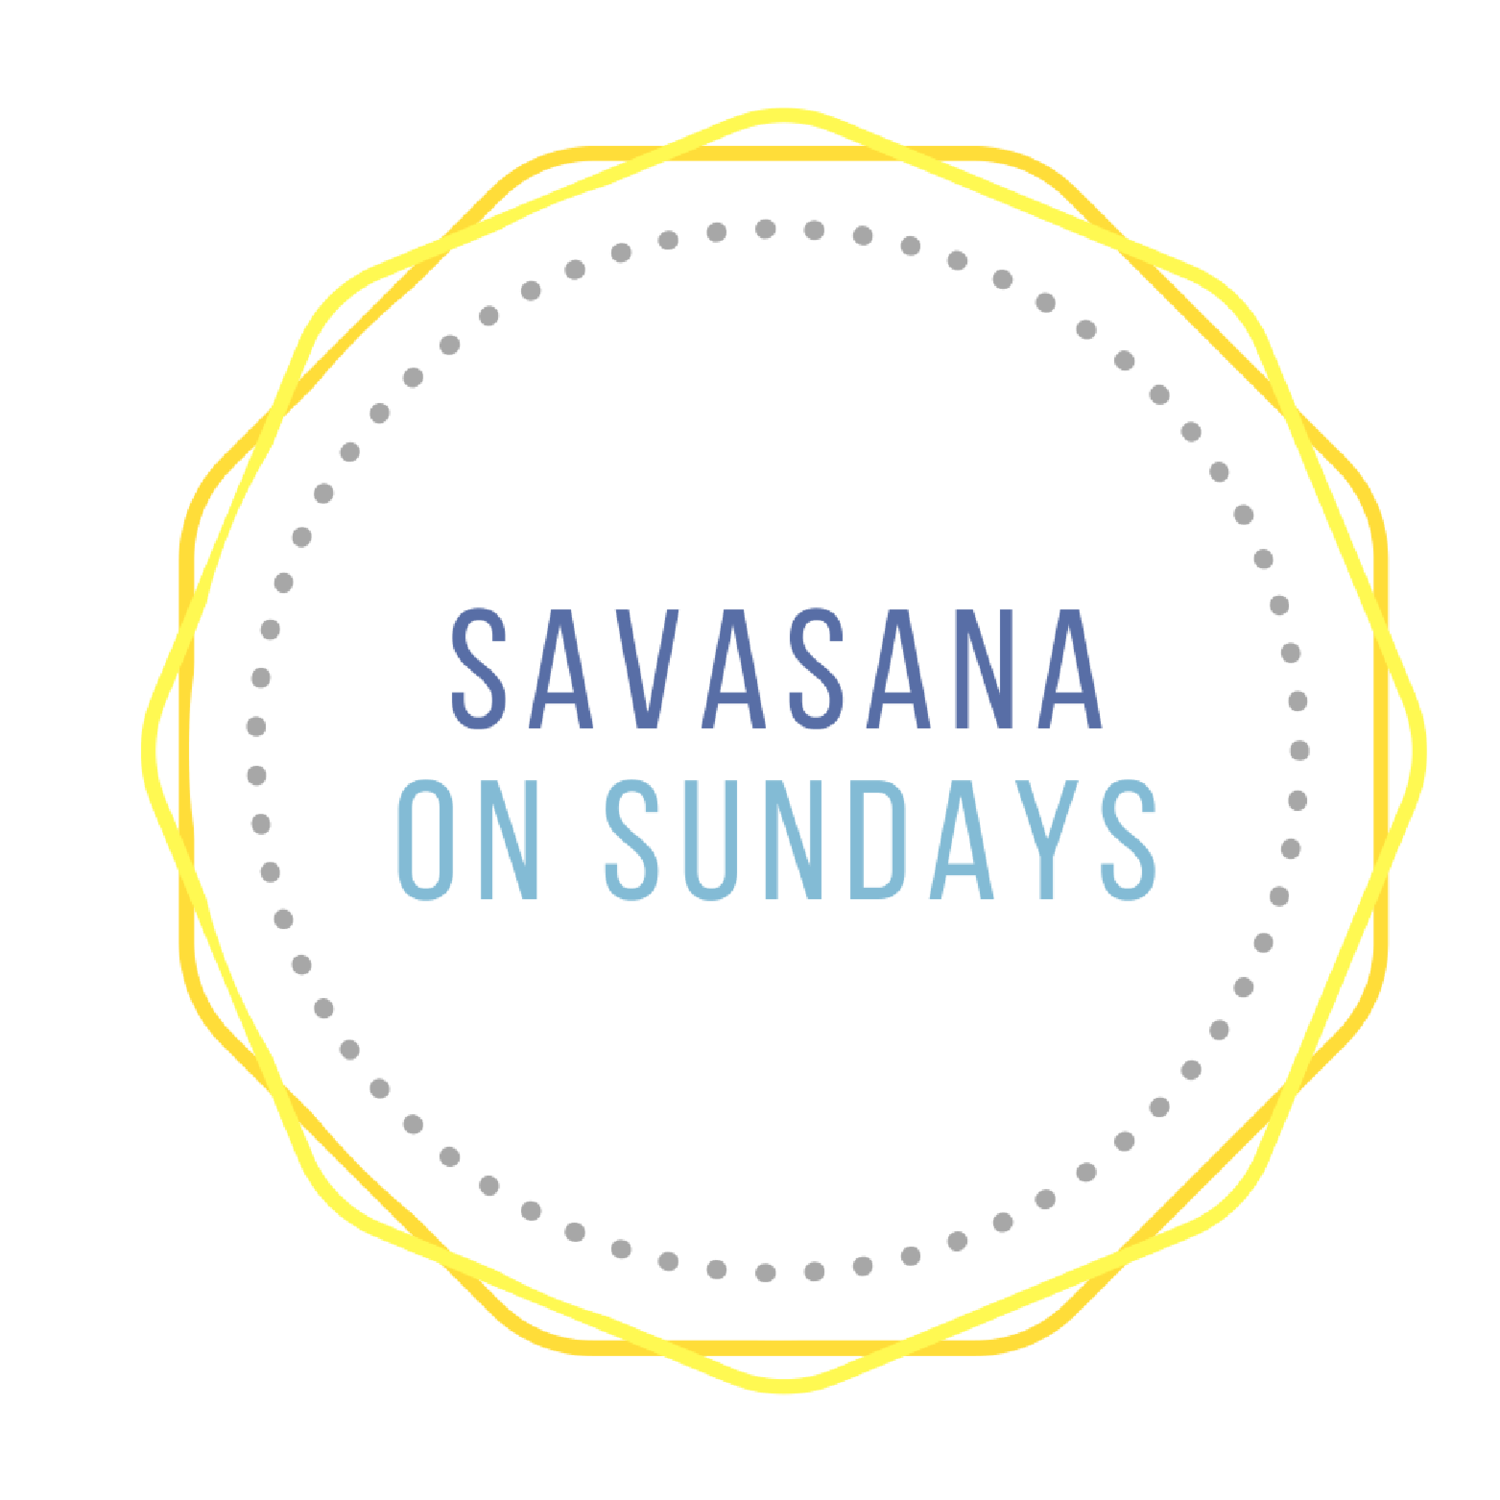 Savasana on Sundays